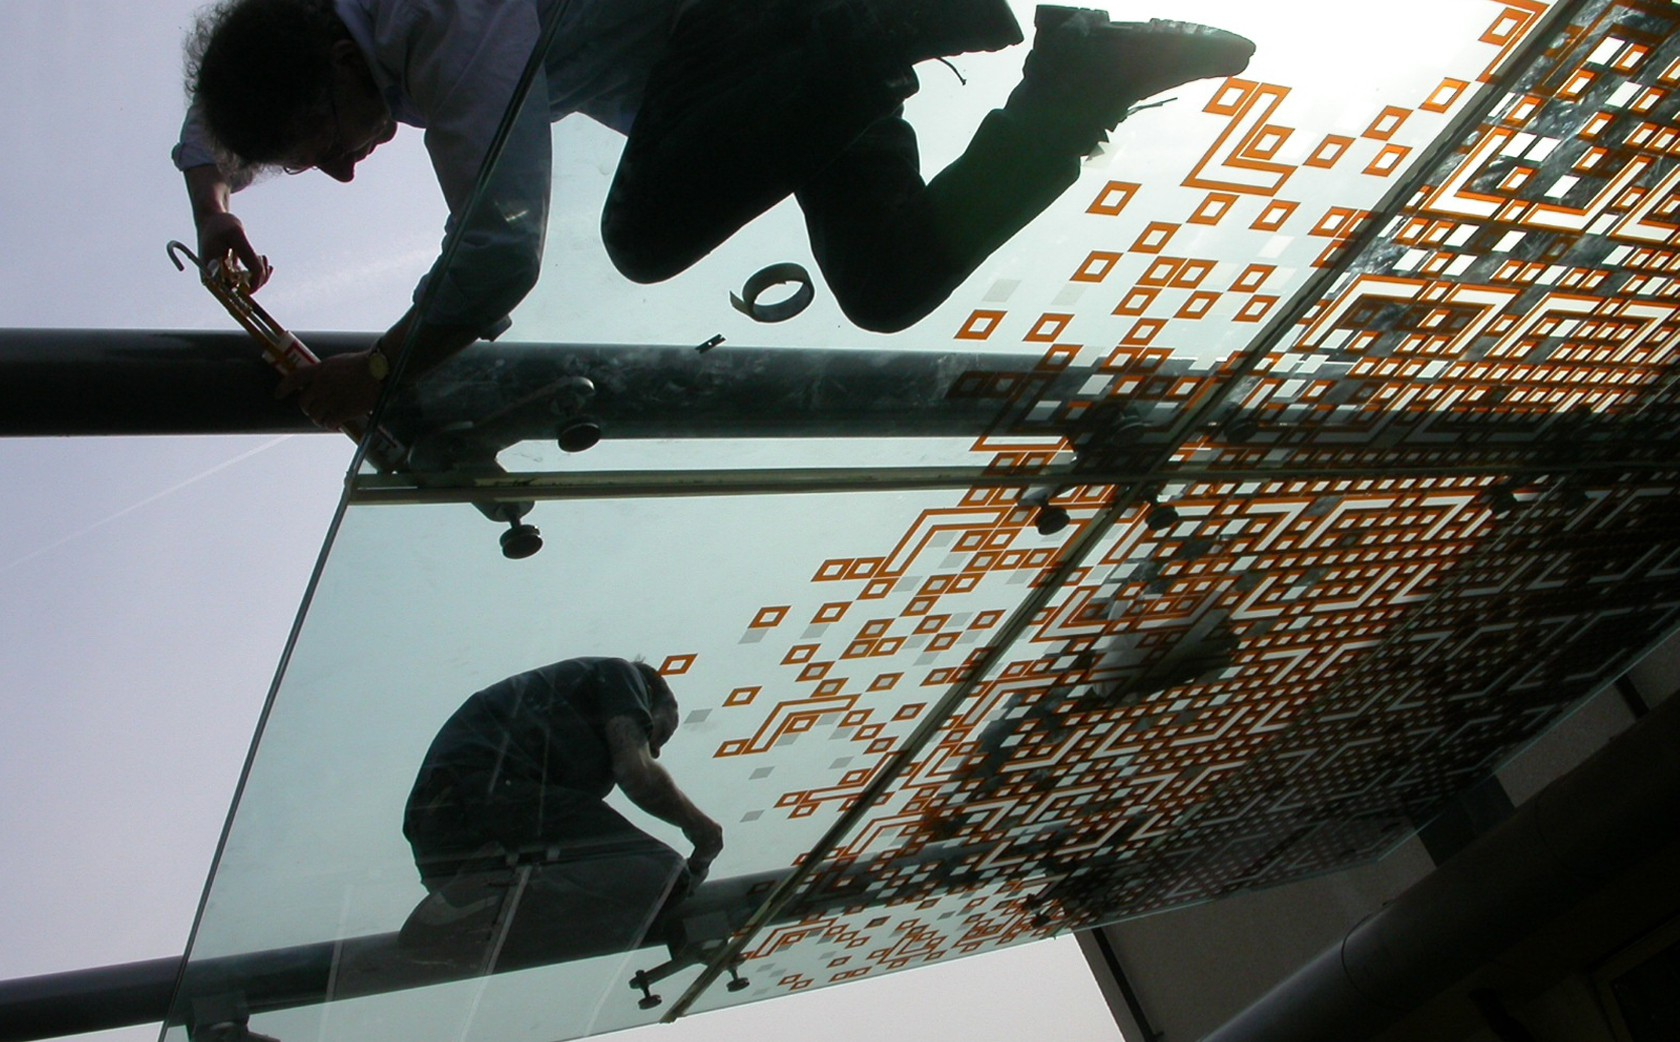 Installation stage. Suspended glass canopy design.